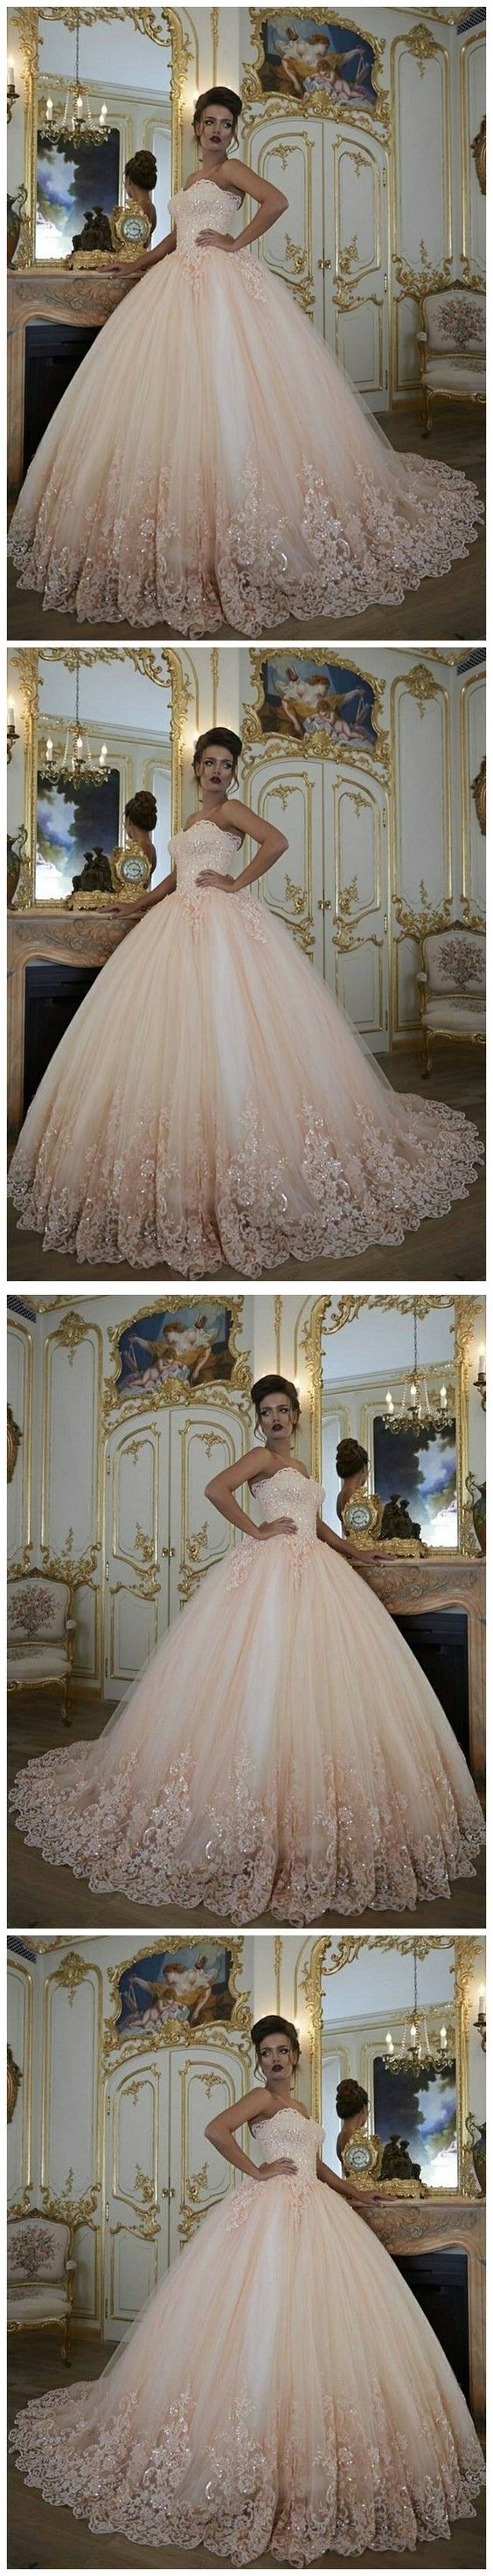 Pink Prom Ball Gown, Prom Dresses , Lace Applique Prom Dress, Puffy Prom Dress, Elegant Prom Dress, Beaded Prom Dress, Sparkly Prom Dress, Luxury Wedding Dress, Affordable Prom Dress M0357#prom #promdress #promdresses #longpromdress #promgowns #promgown #2018style #newfashion #newstyles #2018newprom#eveninggowns#pinkpromdress#laceappliqueprom#puffyprom#beadedprom#ballgown#weddingdress